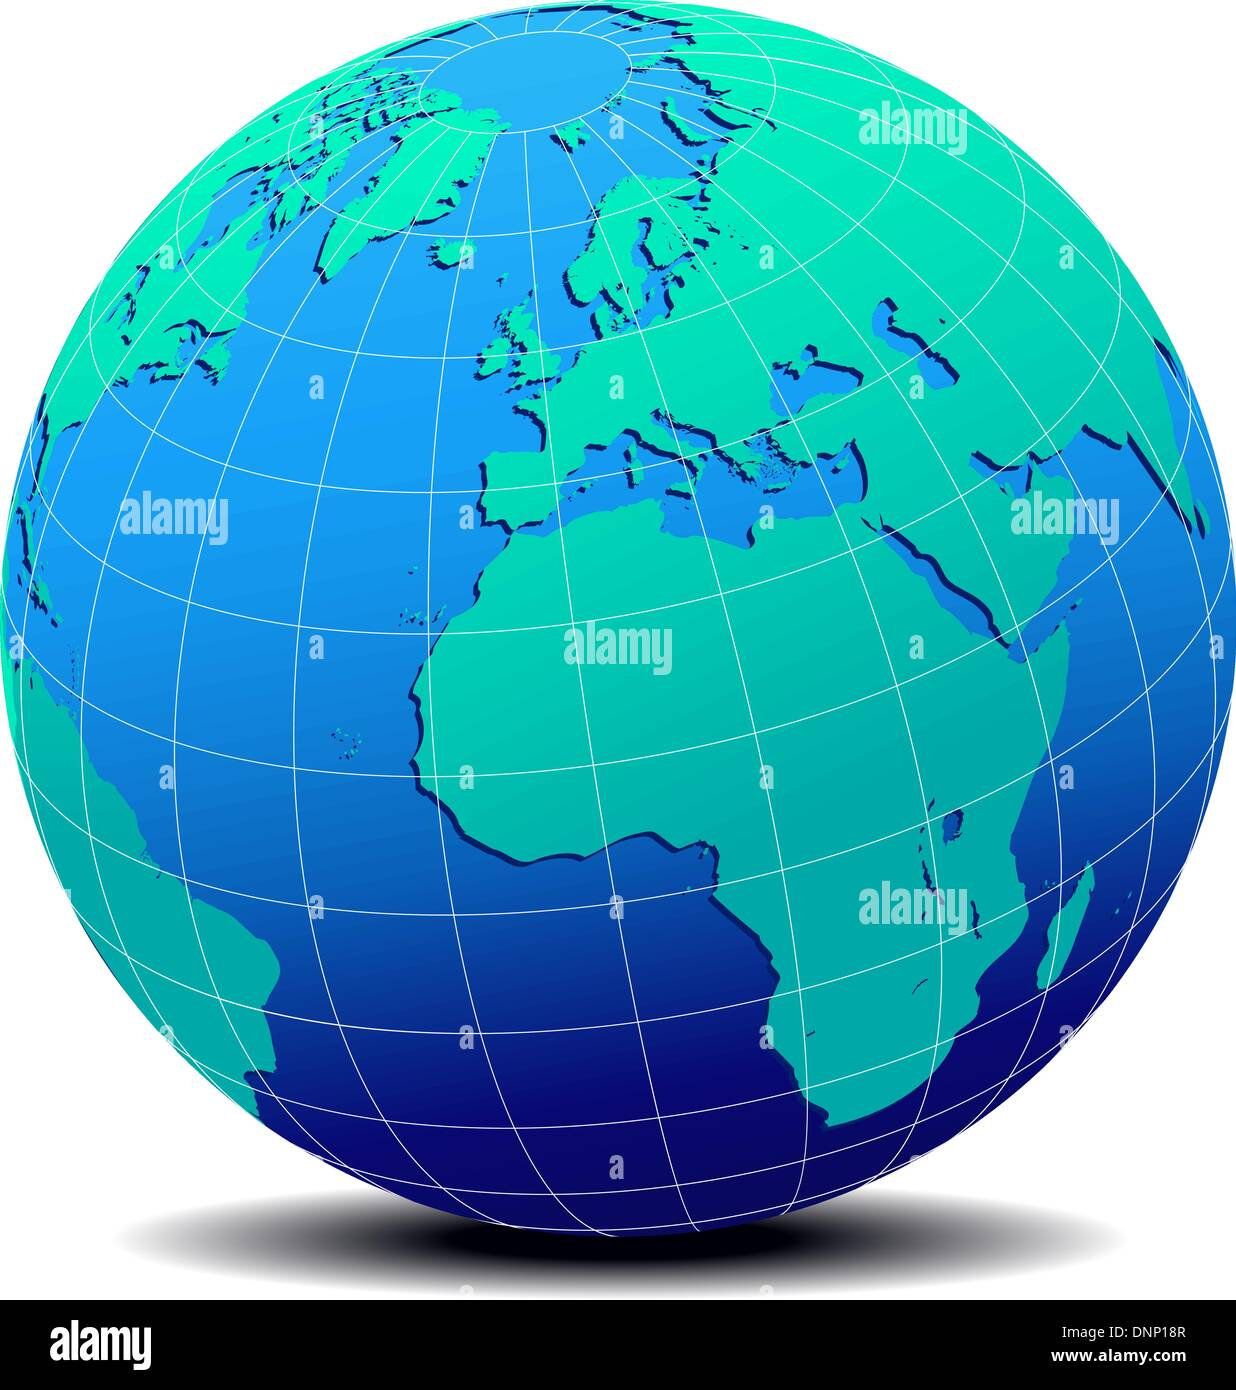 North Africa World Map.Vector Map Icon Of The World In Globe Form Europe North Africa